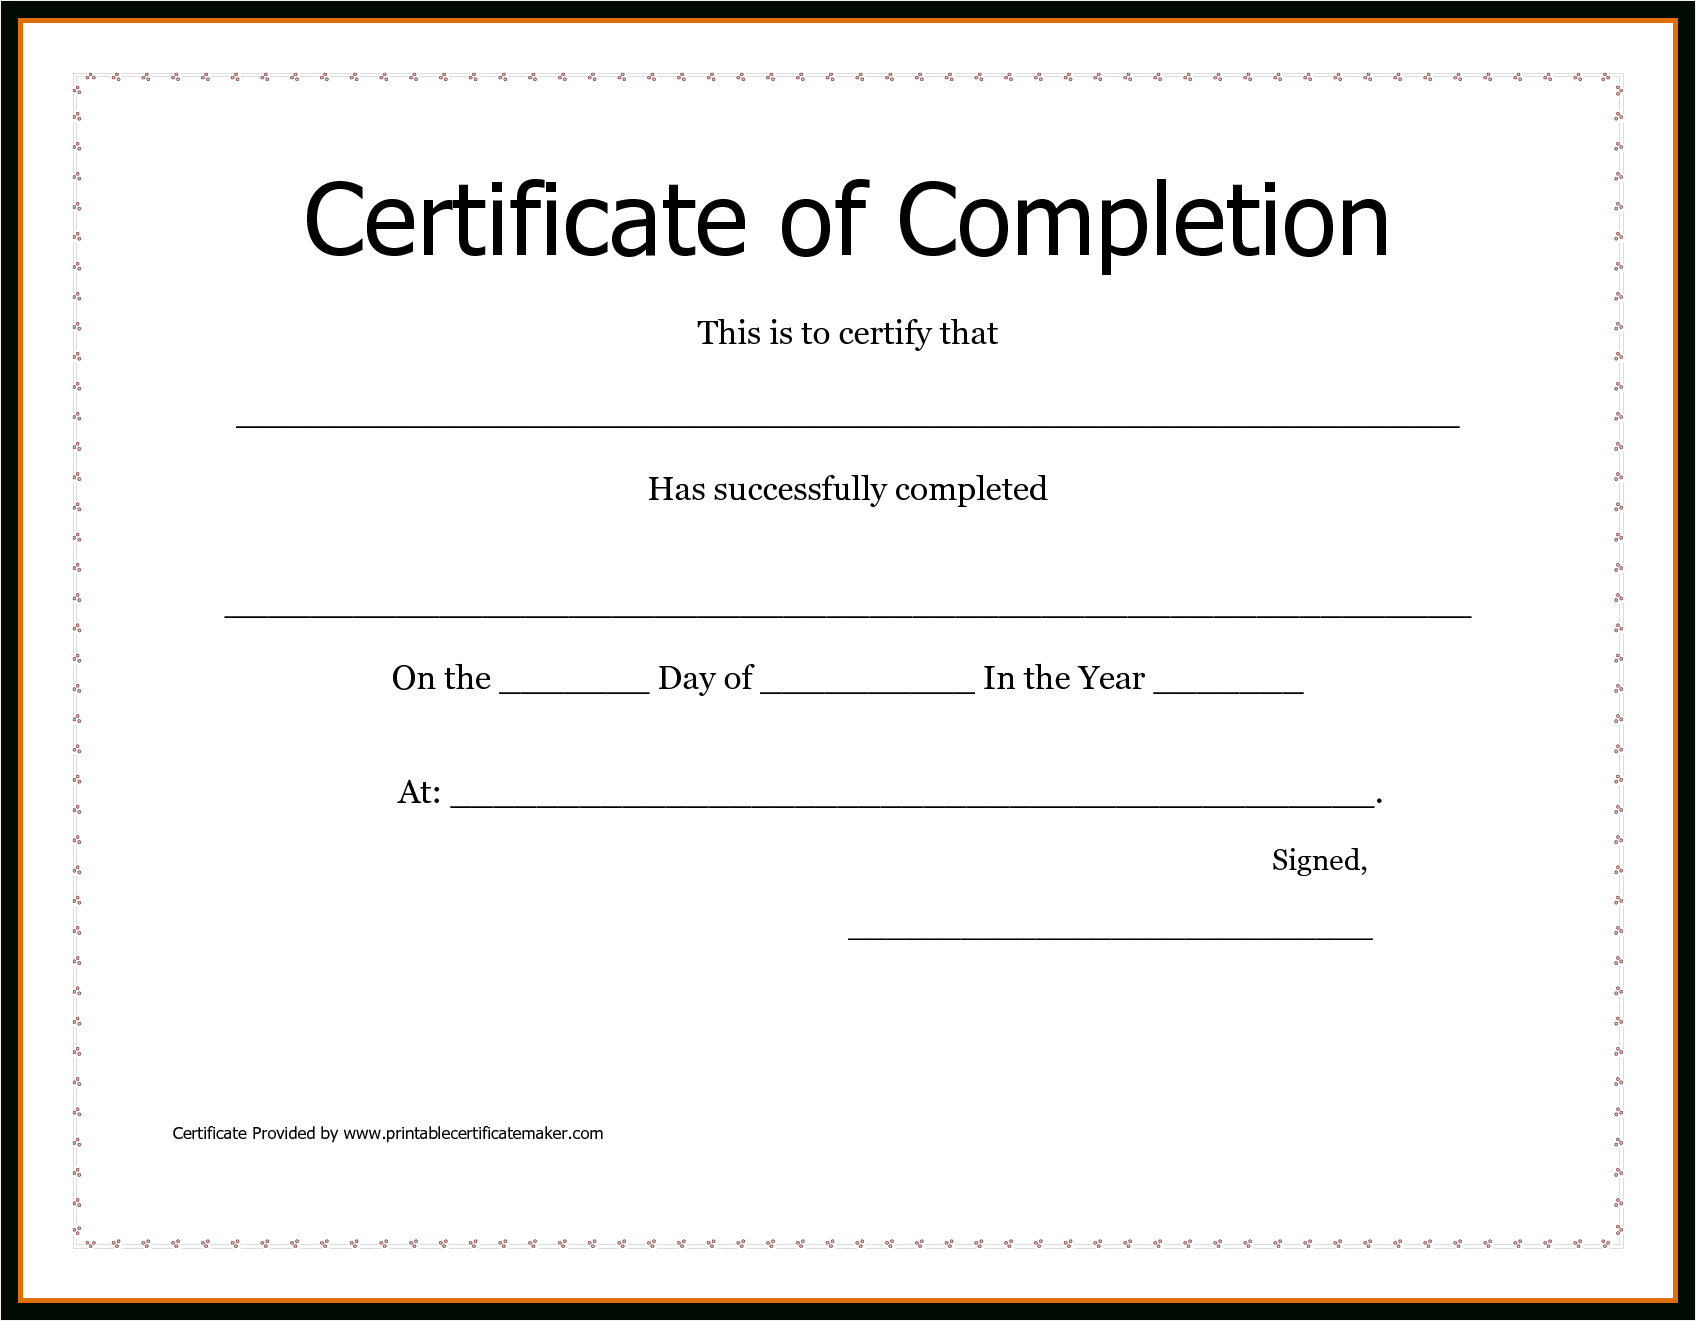 Free Printable Certificate Of Achievement Word Template Blank Letter - Free Printable Blank Certificates Of Achievement